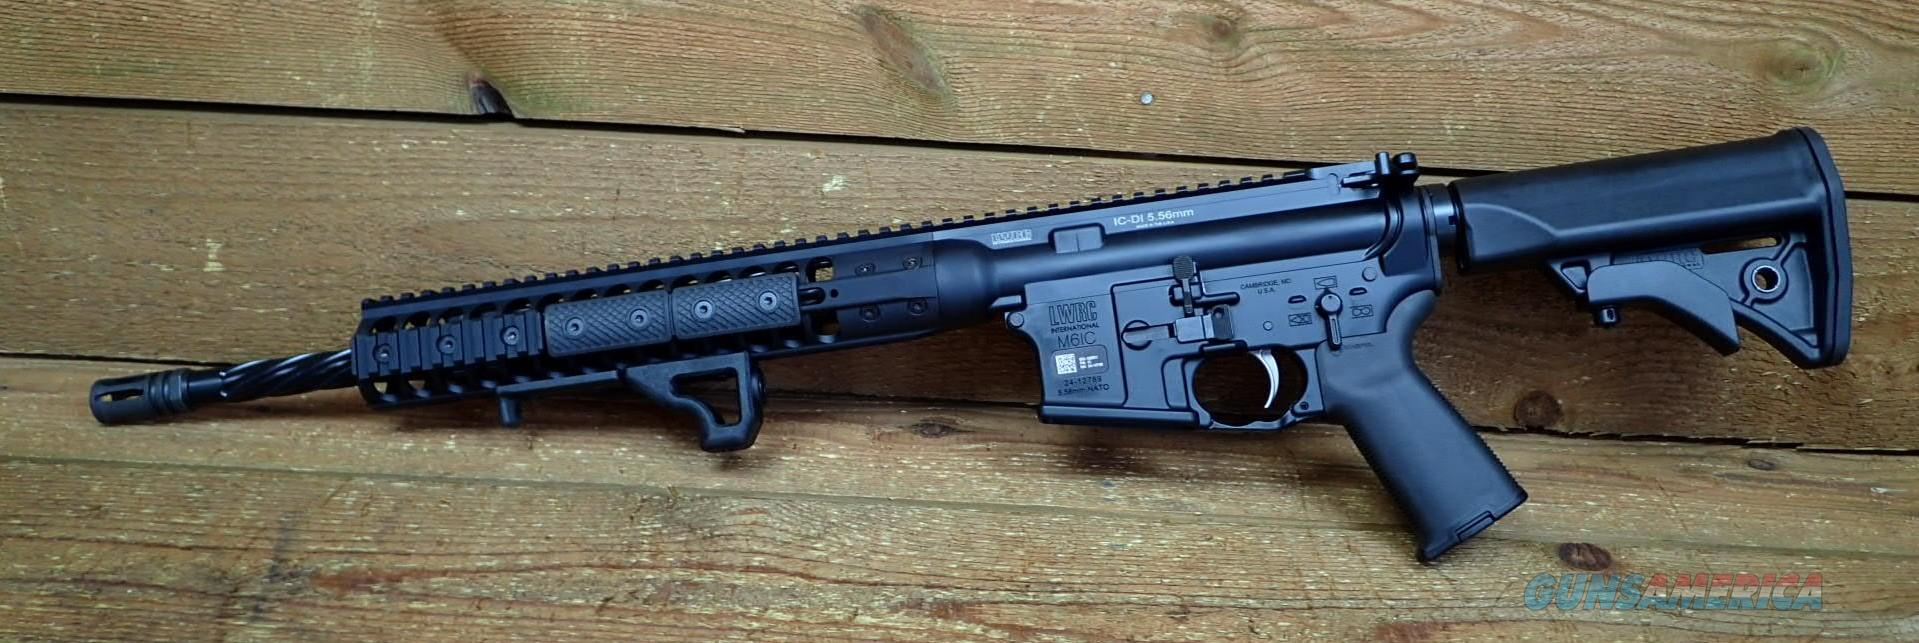 """Sale EASY PAY $115 DOWN LAYAWAY  LWRC M4 16.1"""" Spiral Fluted Barrel  Compact Stock p-mag Individual Carbine Ar15 Mil-Spec Direct Impingement A2 Birdcage Magpul ICDIR5B16  5.56mm NATO  16.1"""" Fore Grip Cold Hammer Forged Ar-15   Guns > Rifles > LWRC Rifles"""